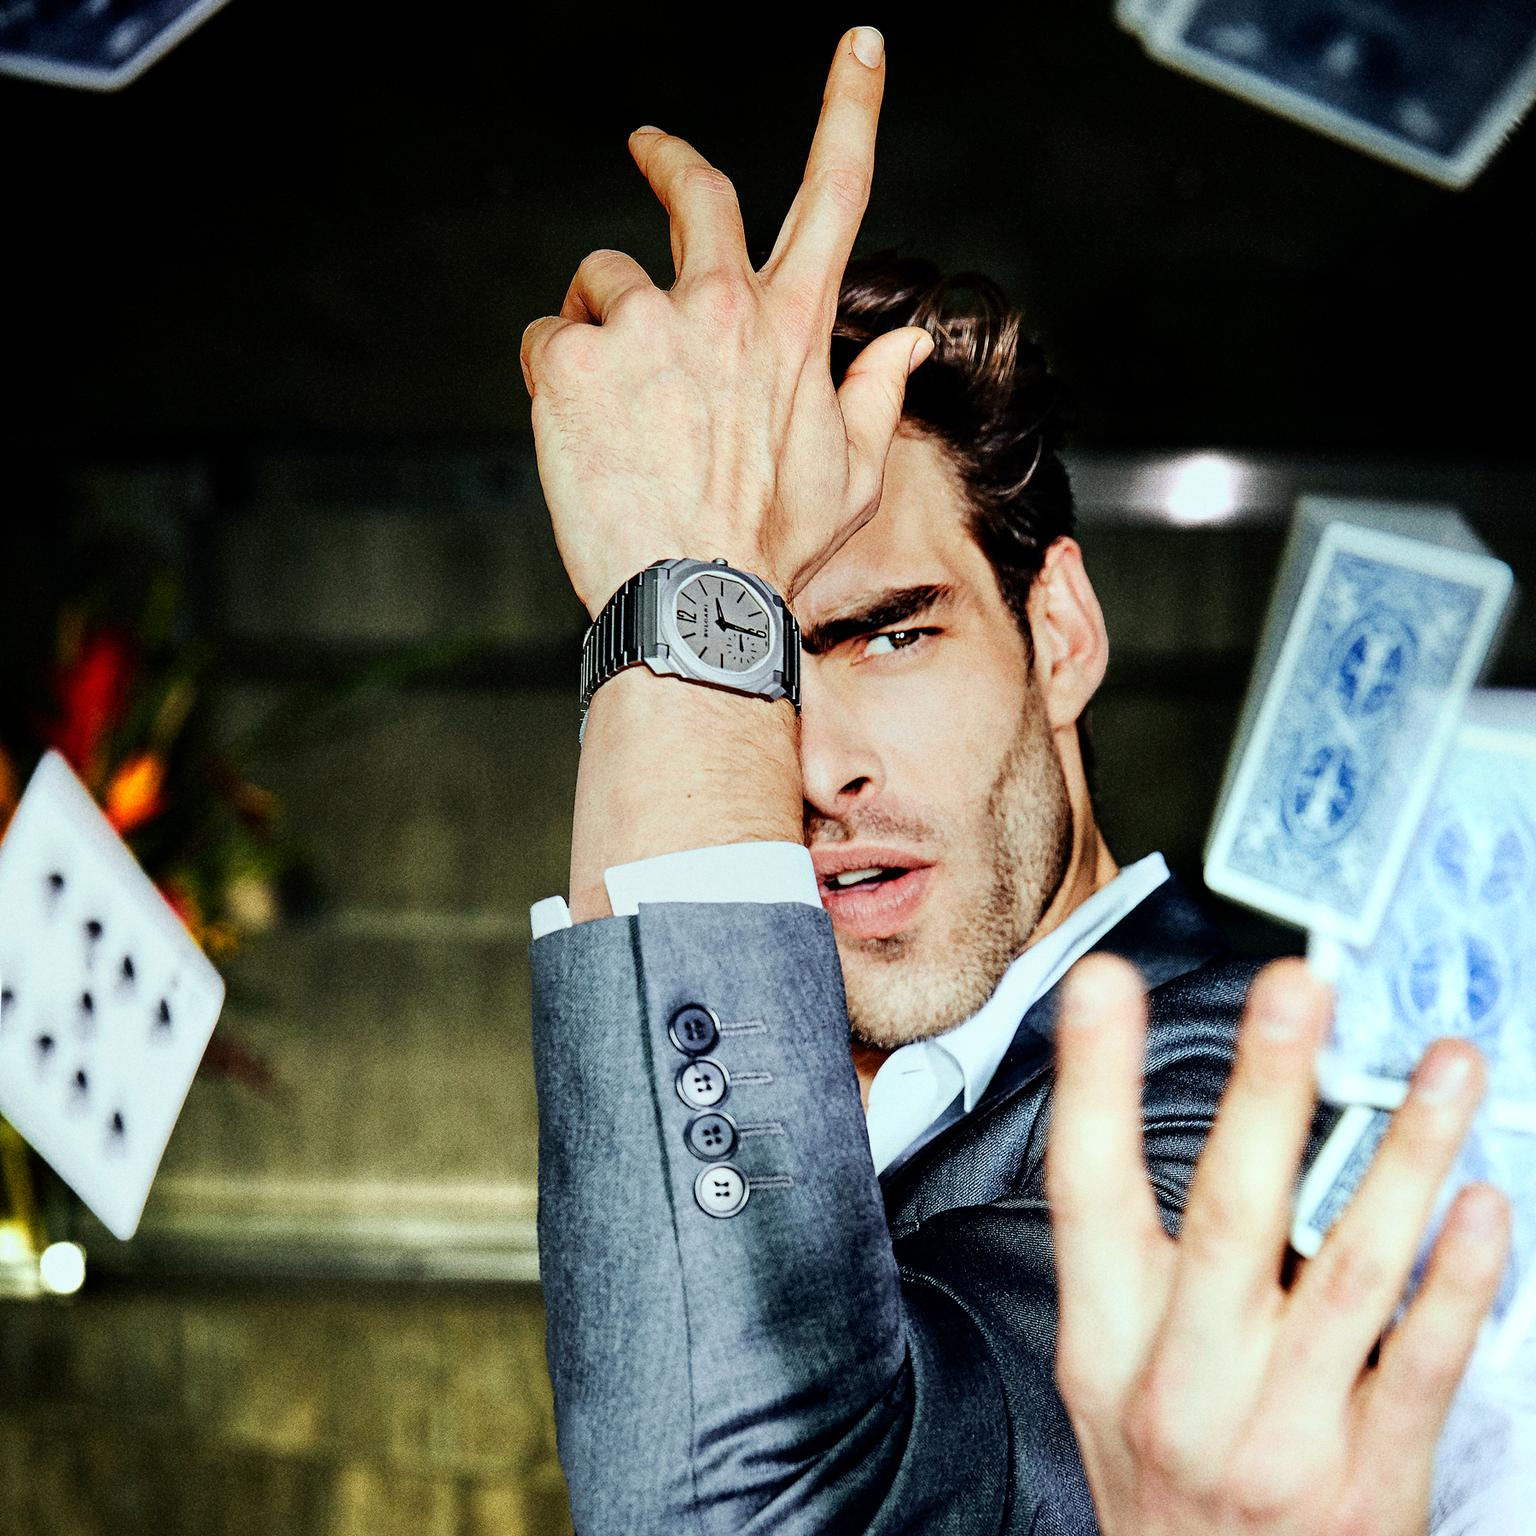 Jon Kortajarena wearing Bulgari's Octo Finissimo Automatic watch